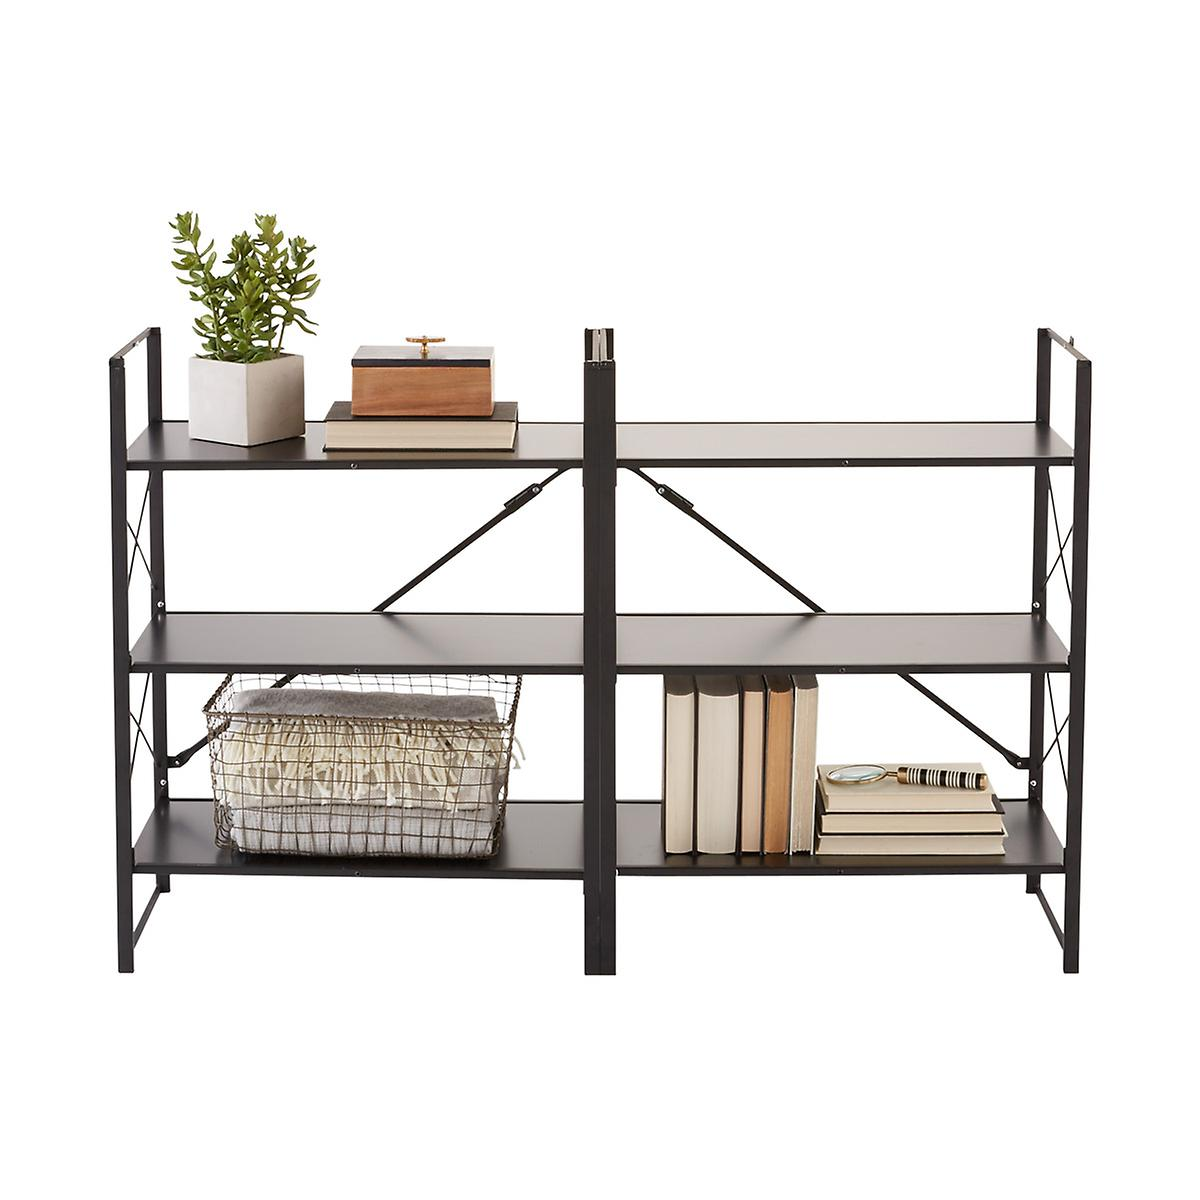 Origami Black 3-Tier Flip Shelf | The Container Store - photo#50